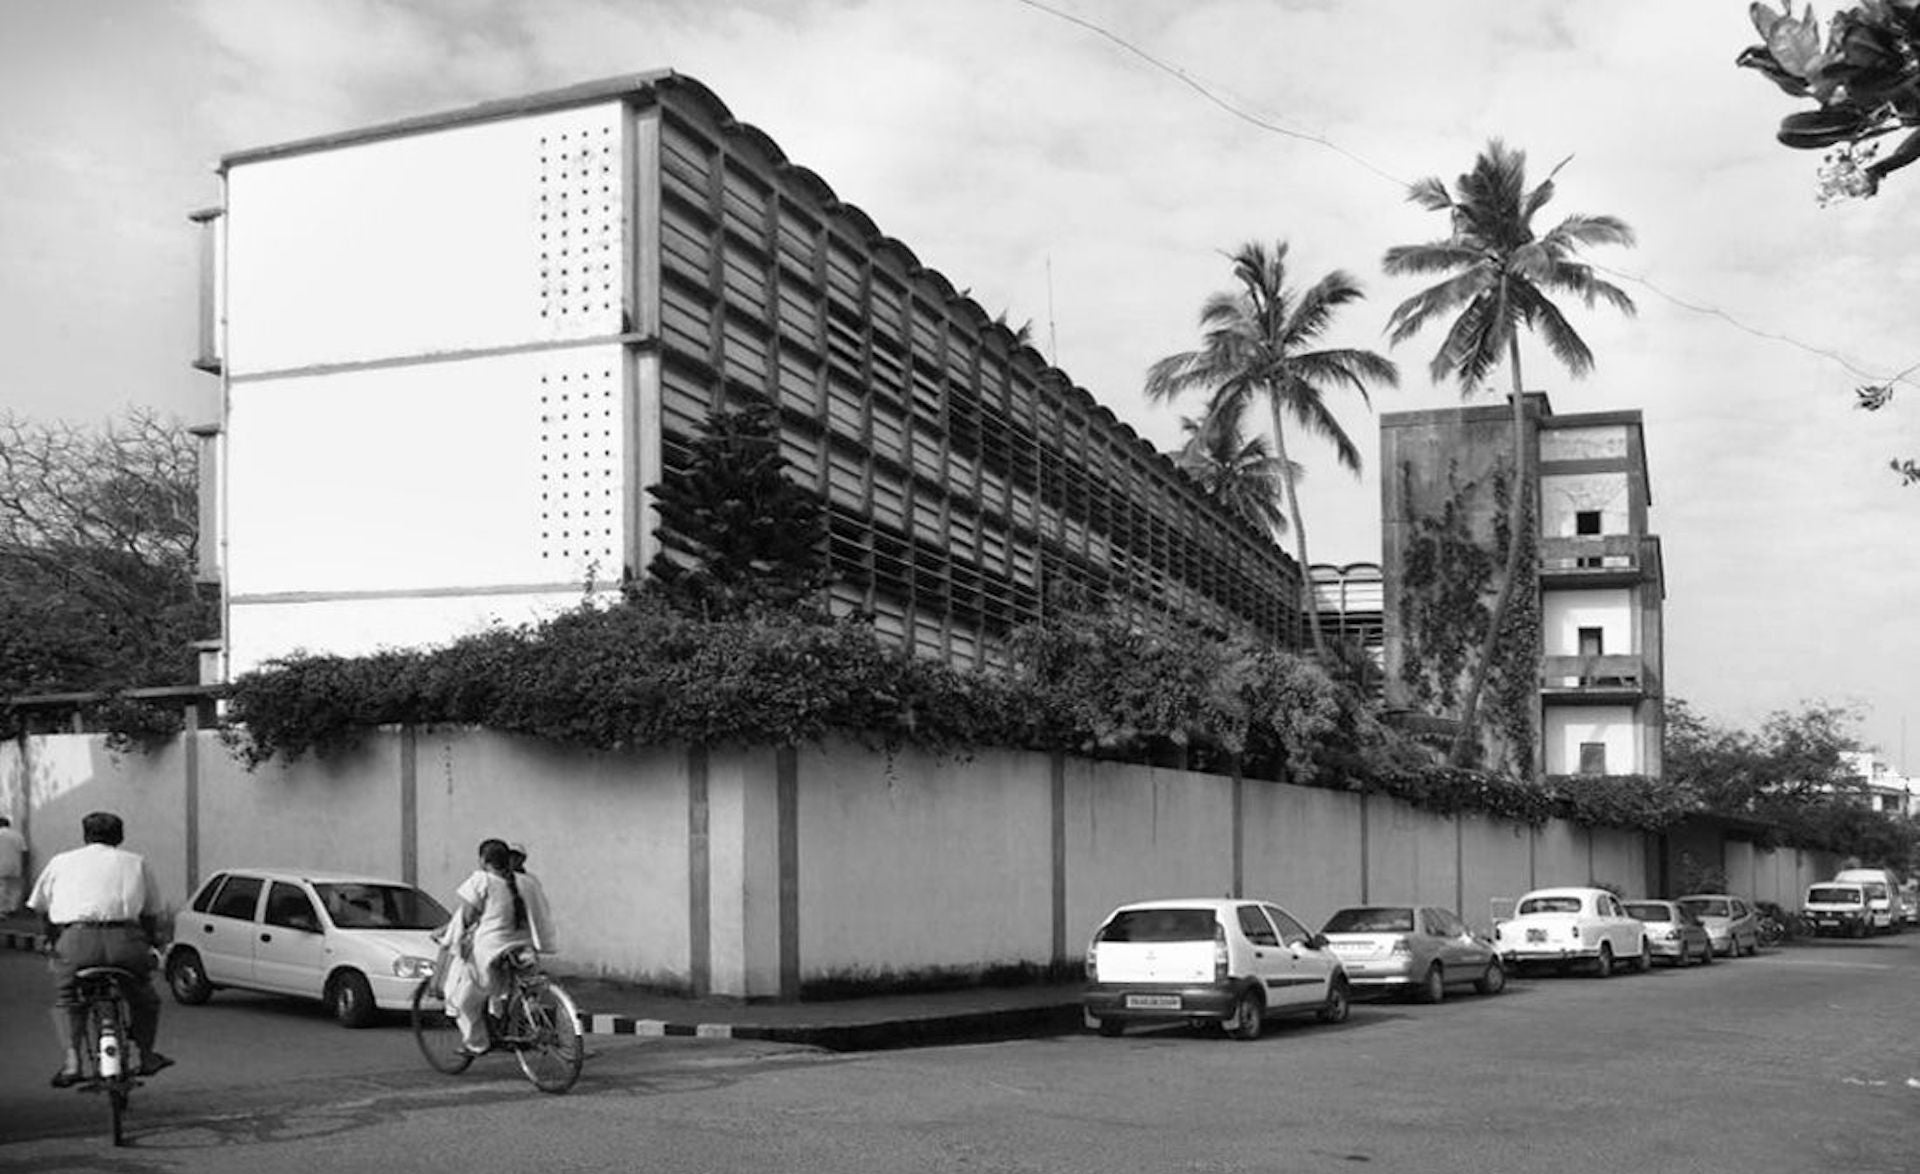 Sri Aurobindo Ashram in Pondicherry, designed by the Raymonds, construction overseen by Nakashima, completed 1945. Photo in public domaine